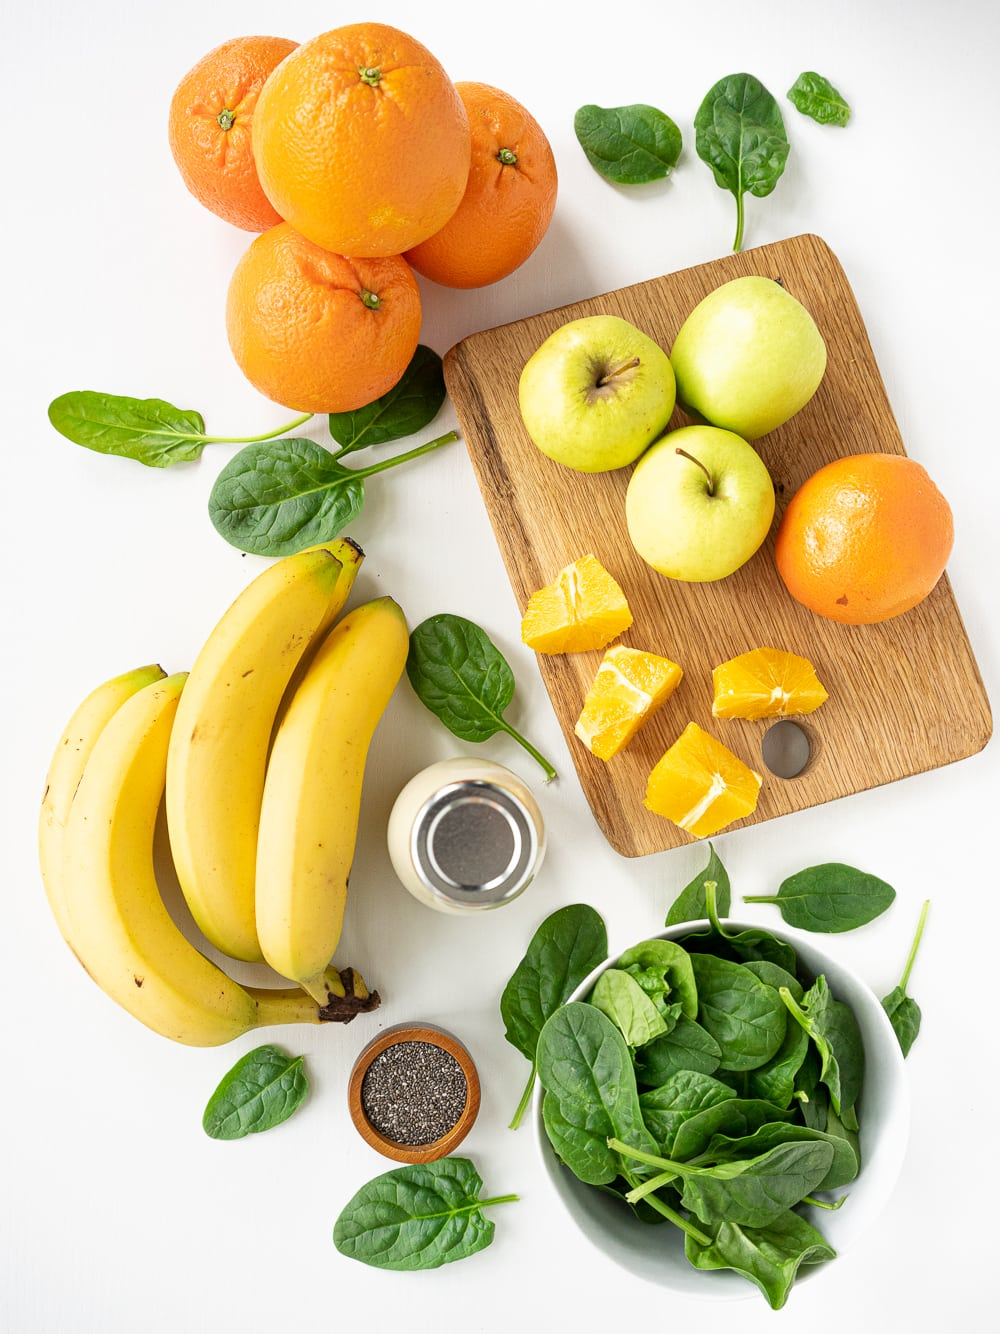 Healthy green smoothie ingredients top view: banana, spinach, oat milk, green apples, oranges